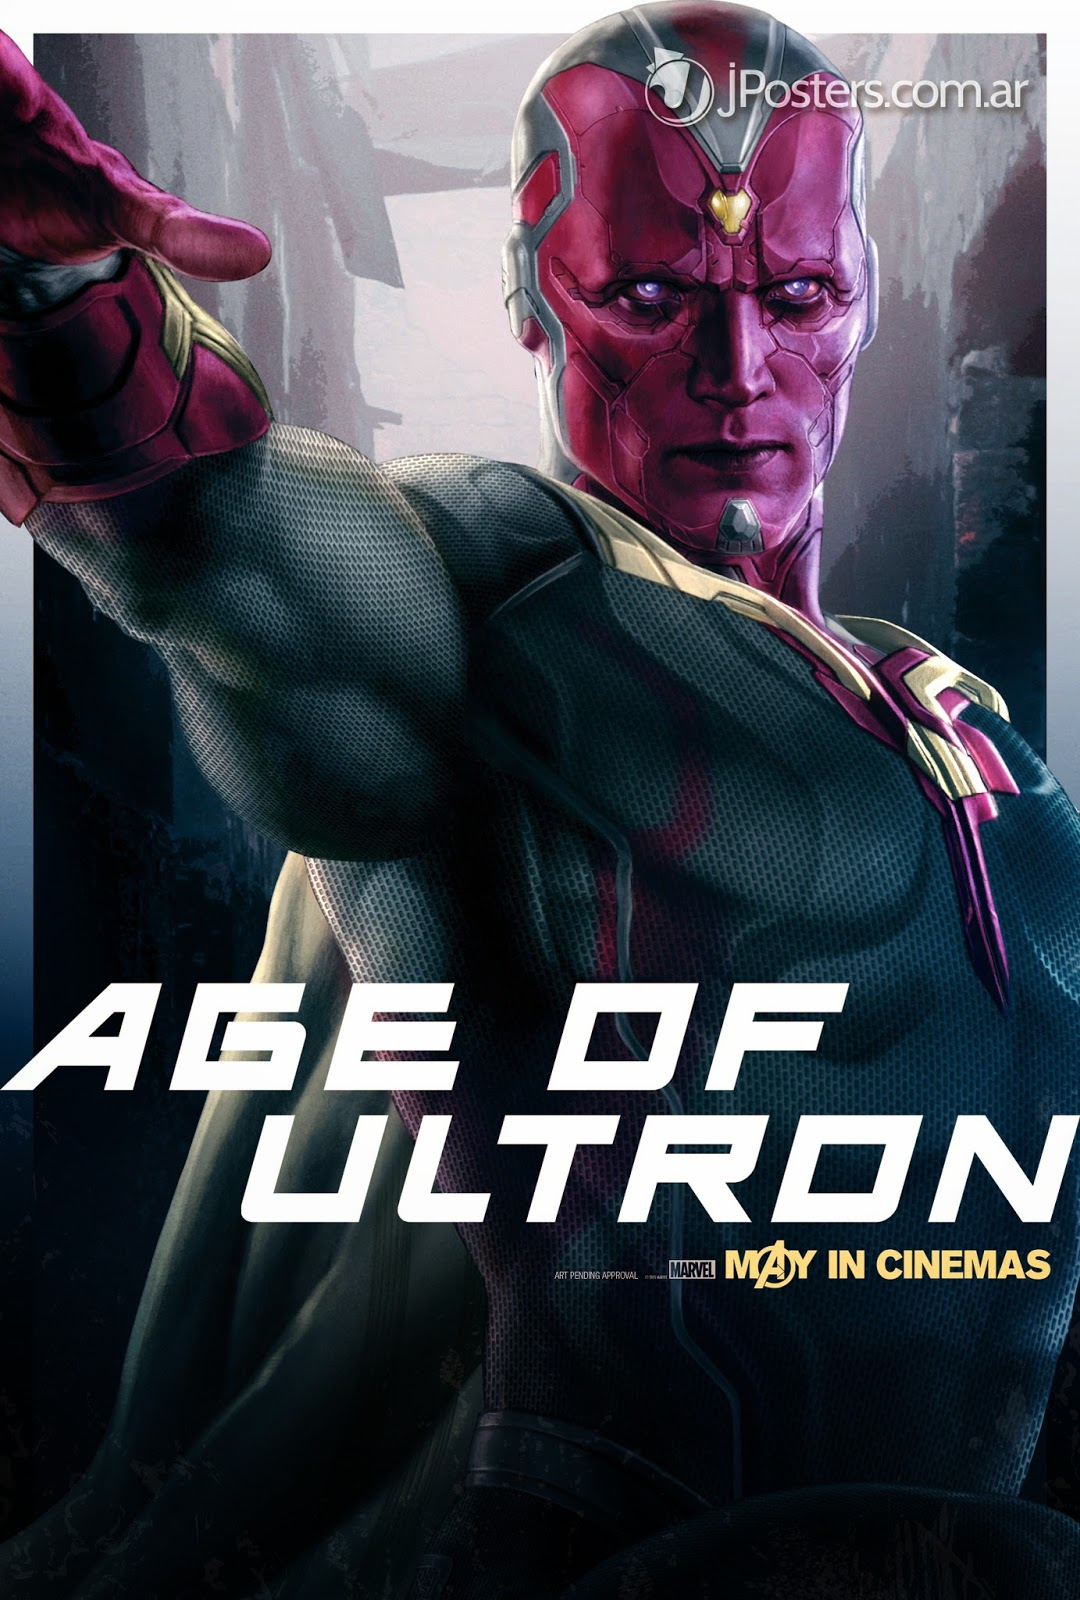 age of ultron character posters